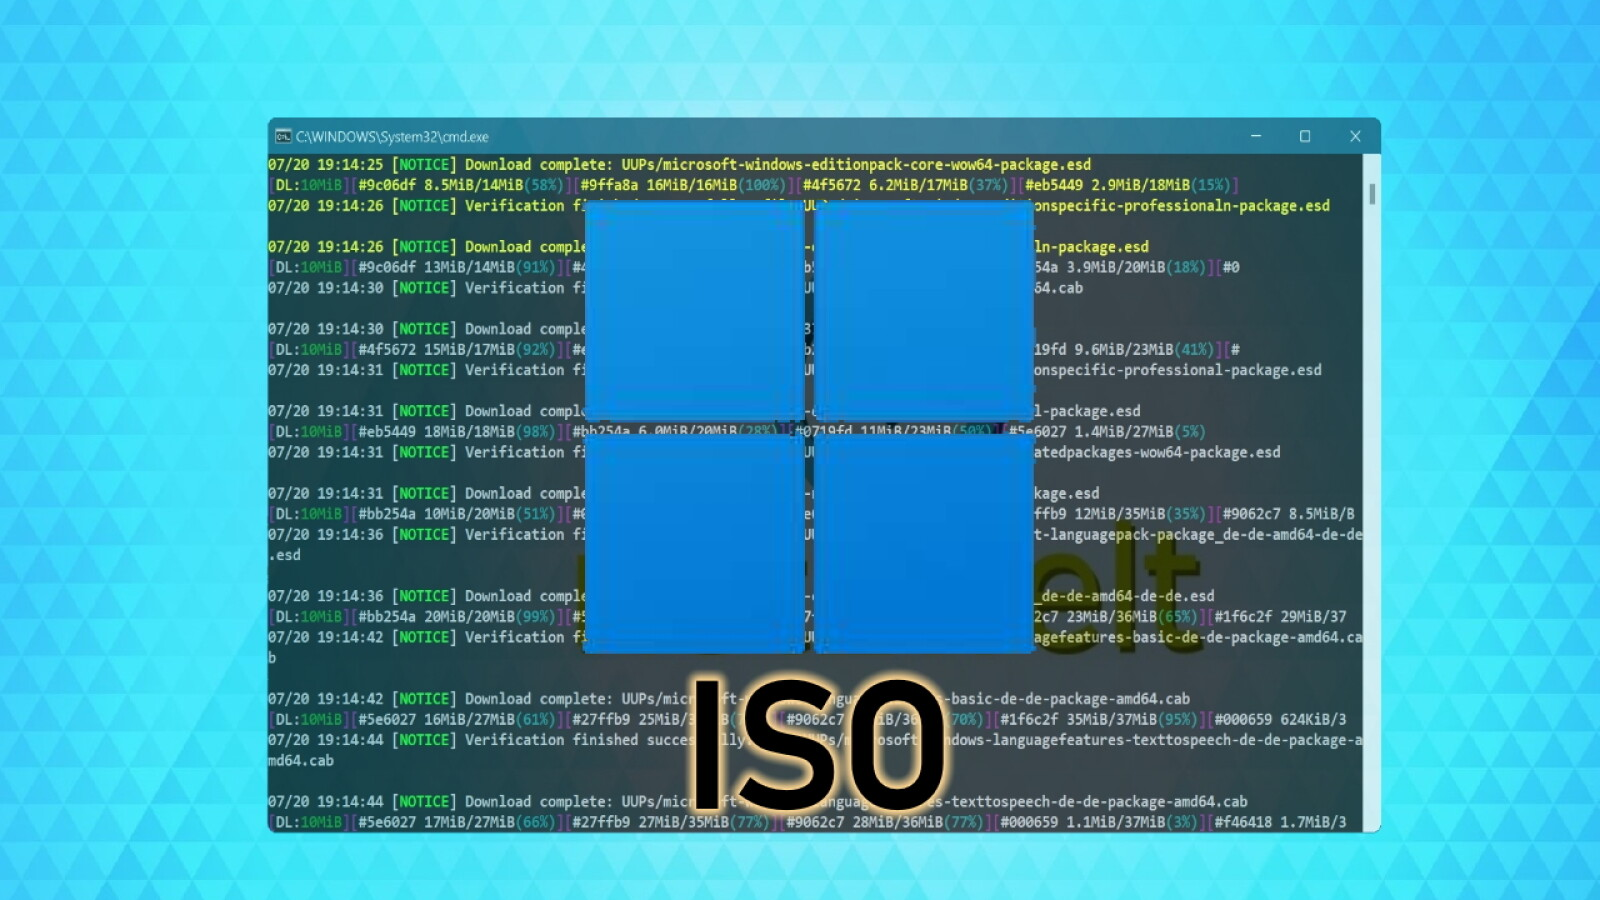 Windows 10 and Windows 11: this is how you get ISO files for all versions